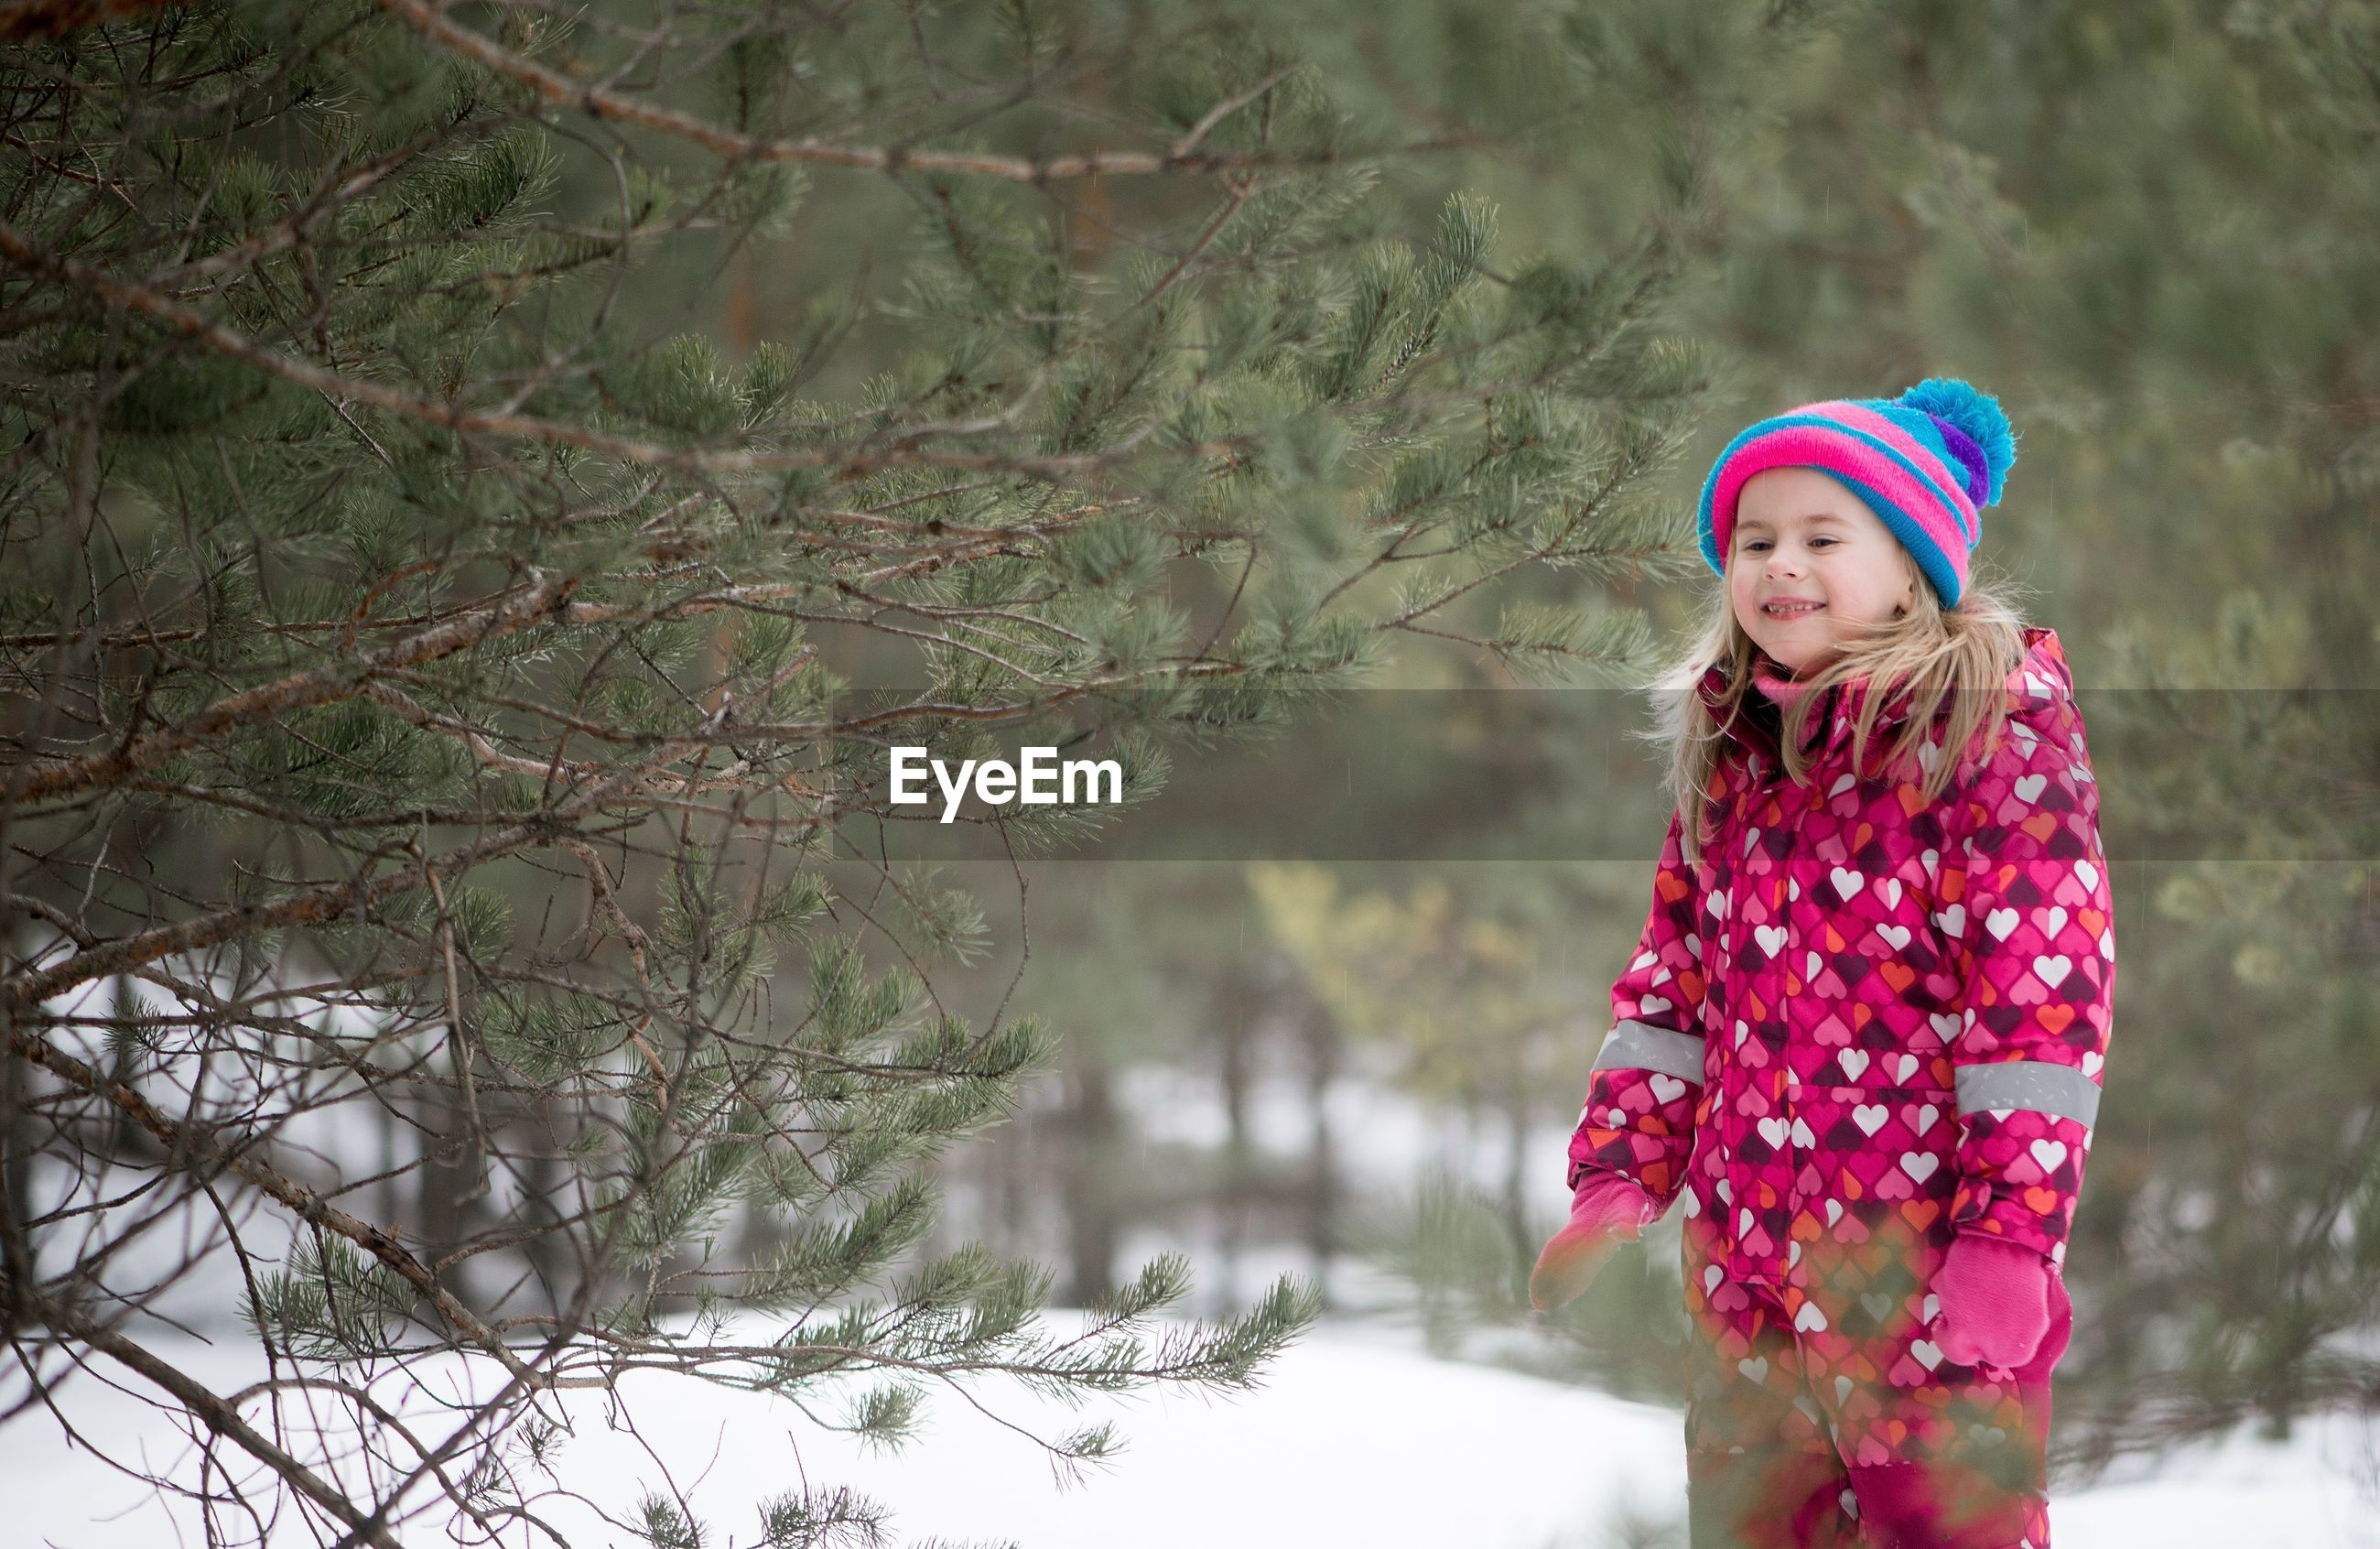 Girl smiling while standing on snowy field by trees